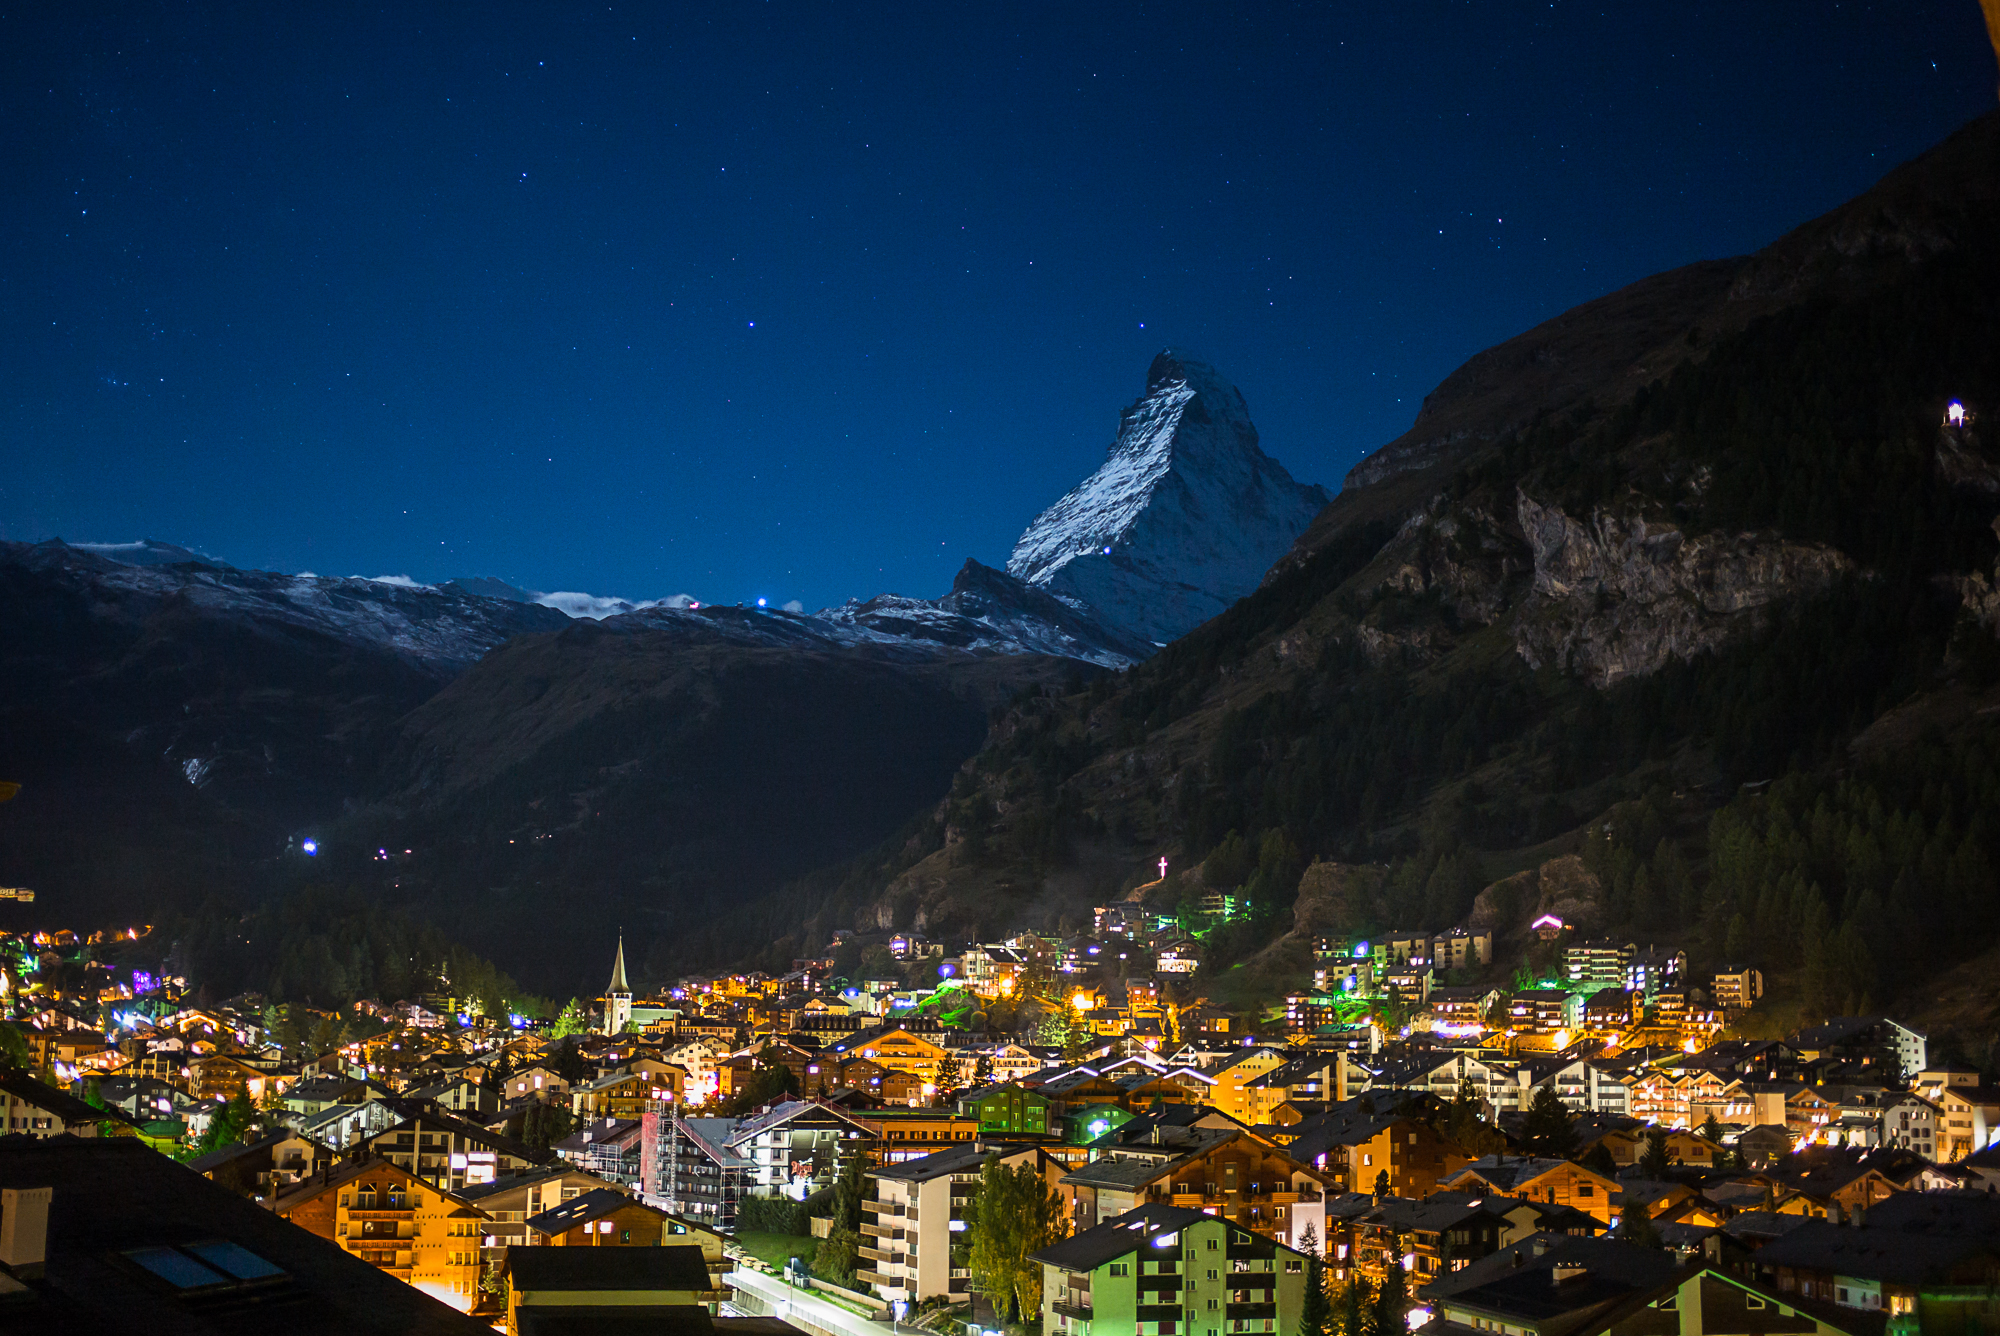 Zermatt Village at night. The lights of the Edelweiss Chalet can be seen on the cliffs on the upper right of the photo